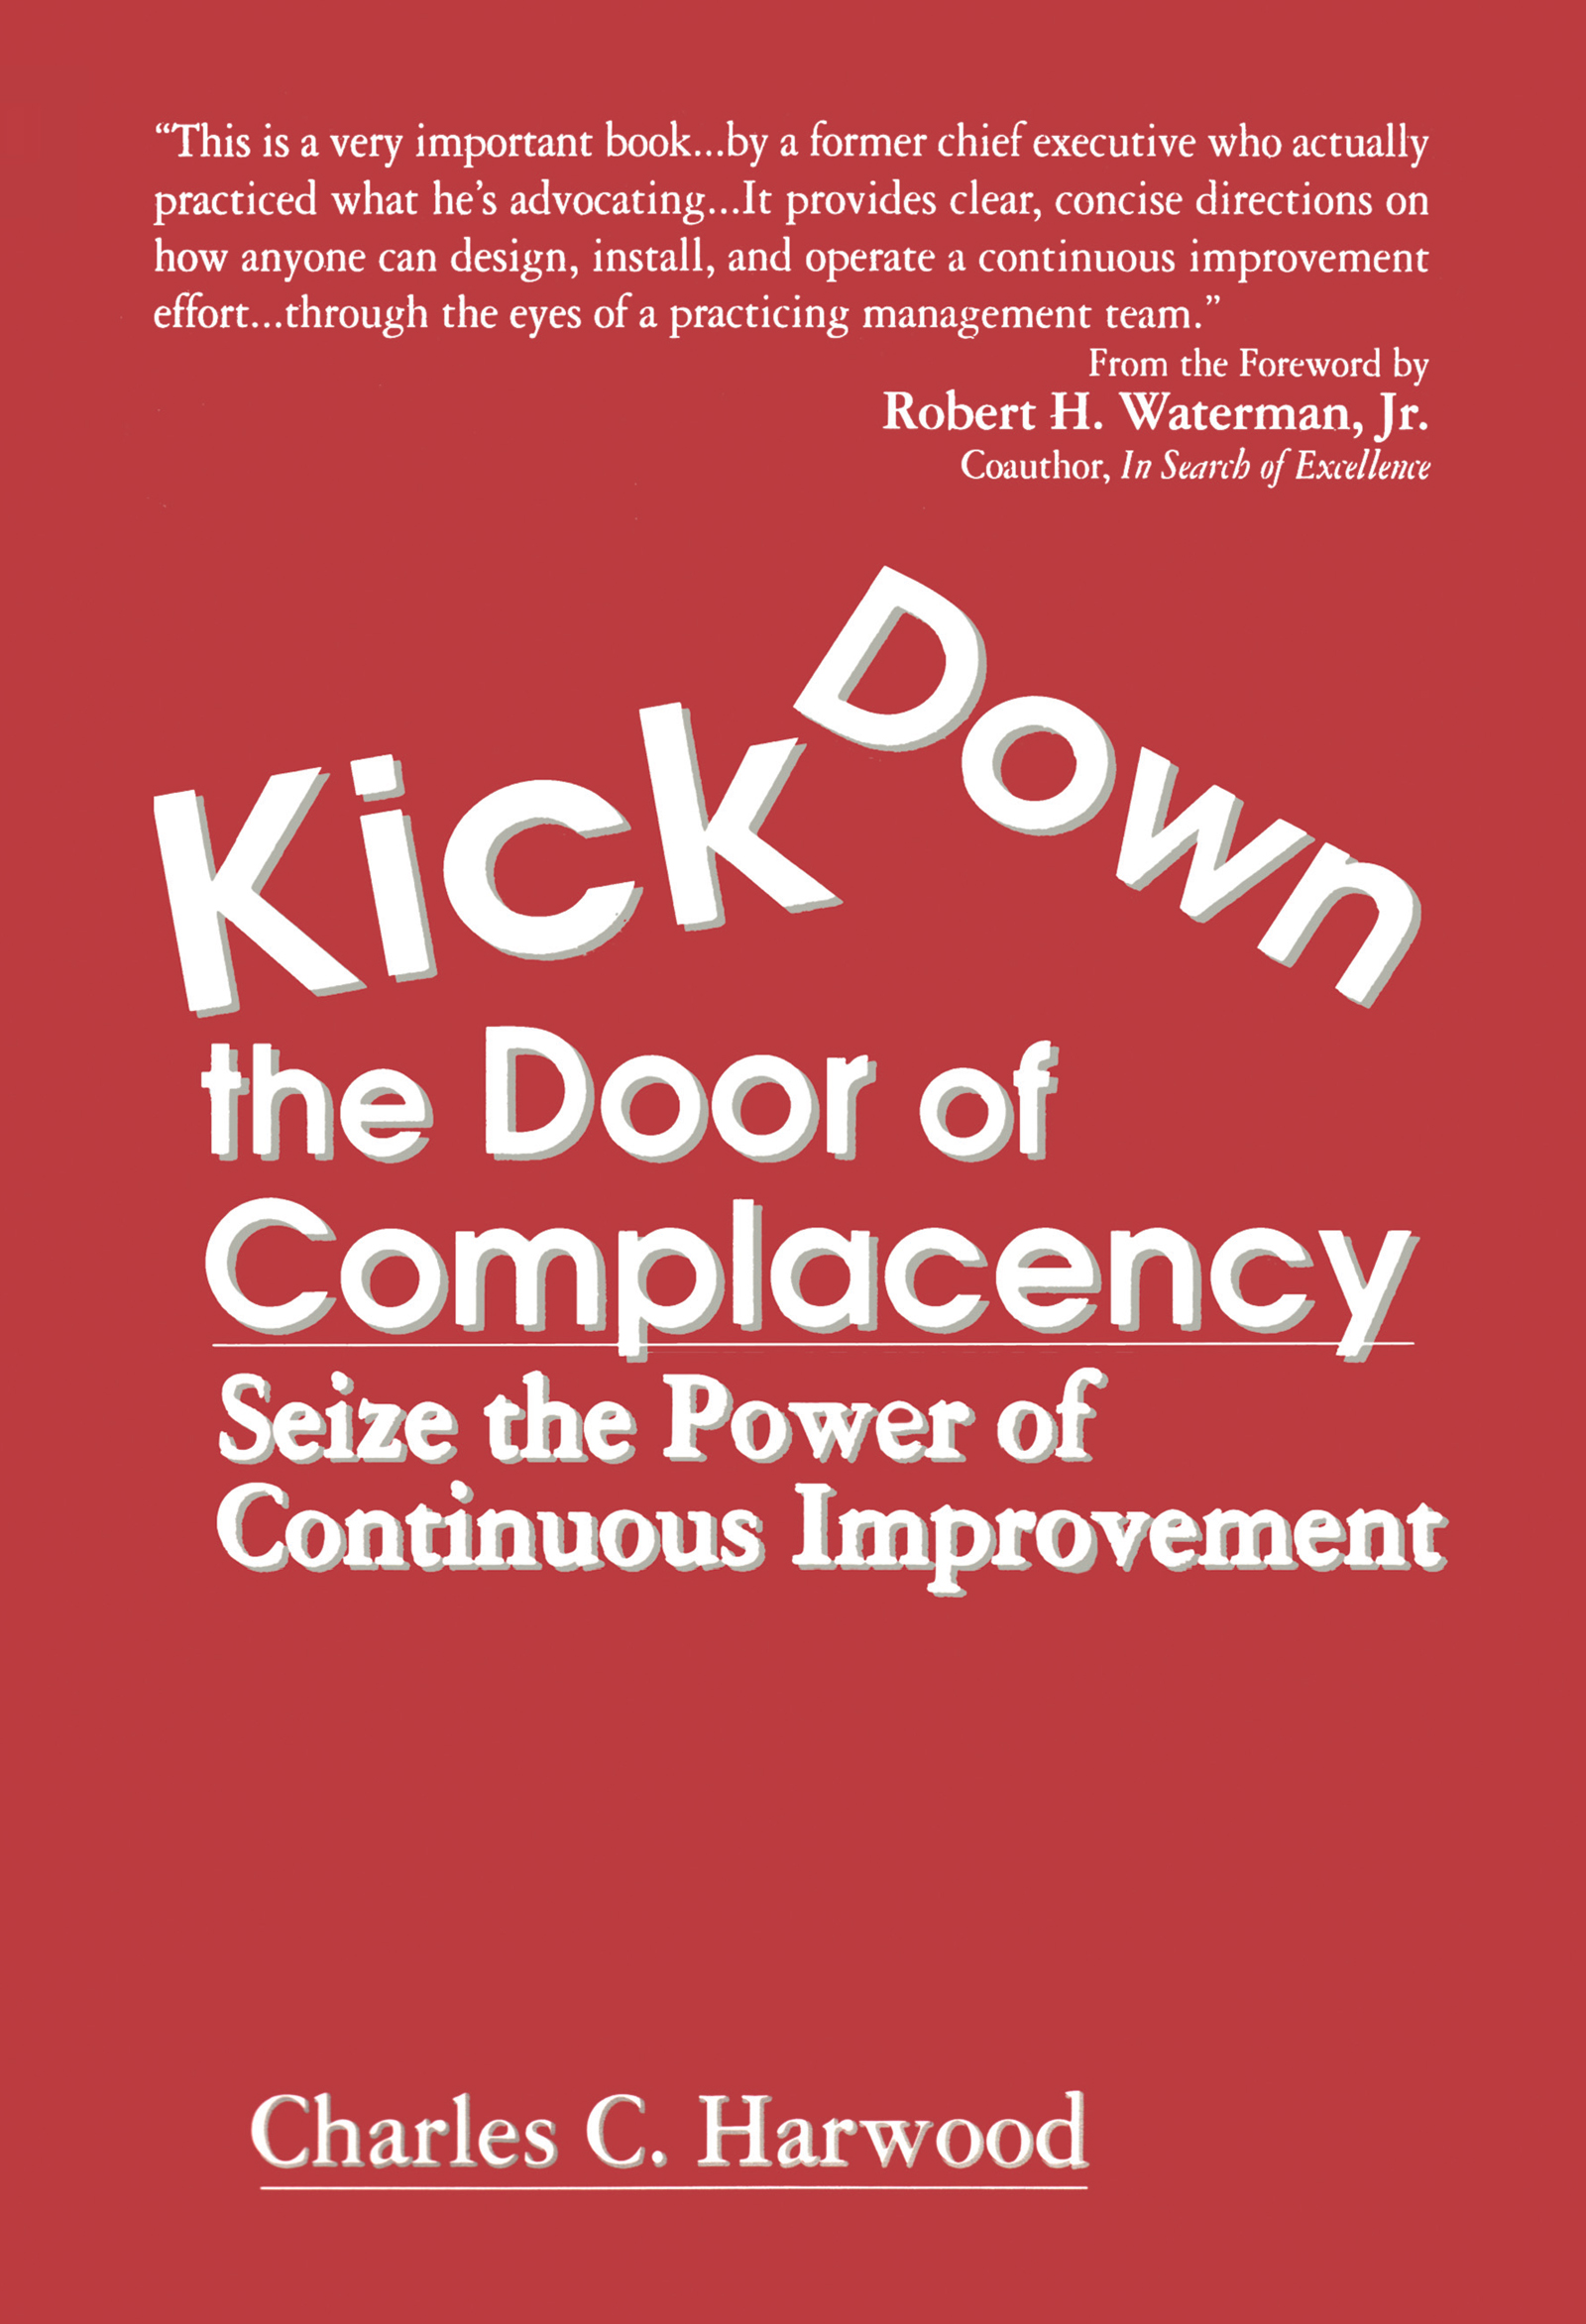 Kick Down the Door of Complacency